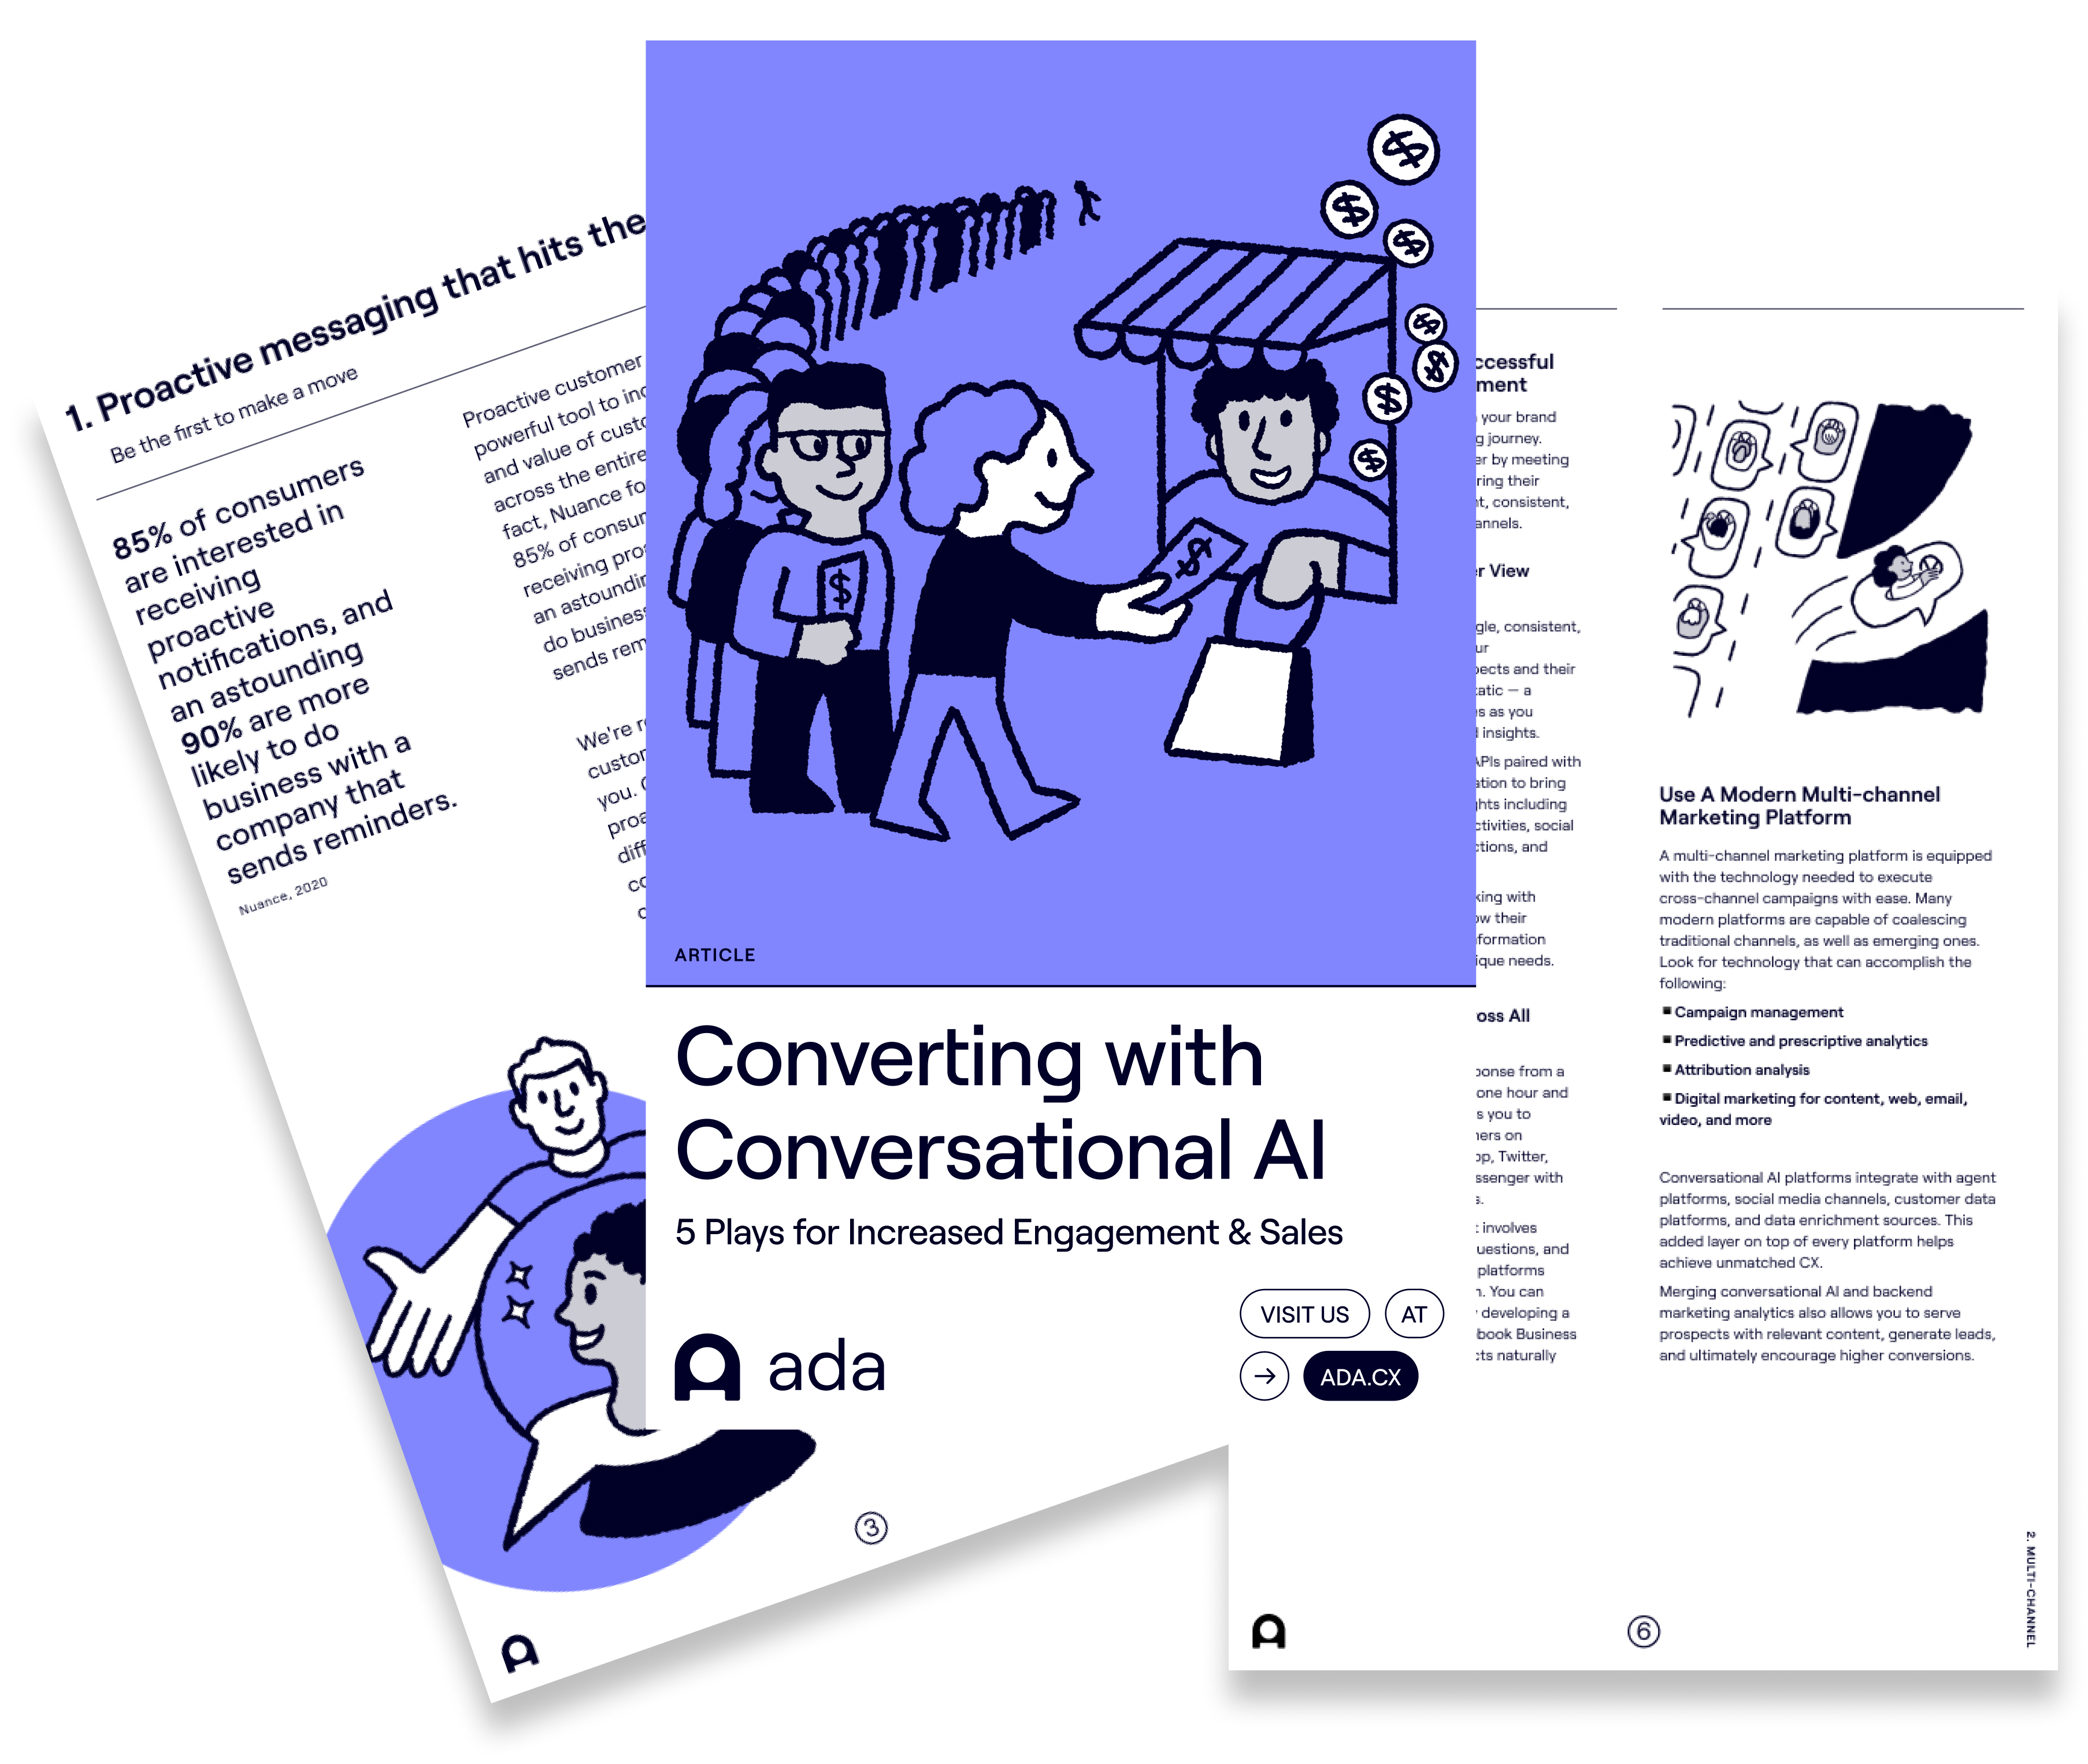 Converting with Conversational AI